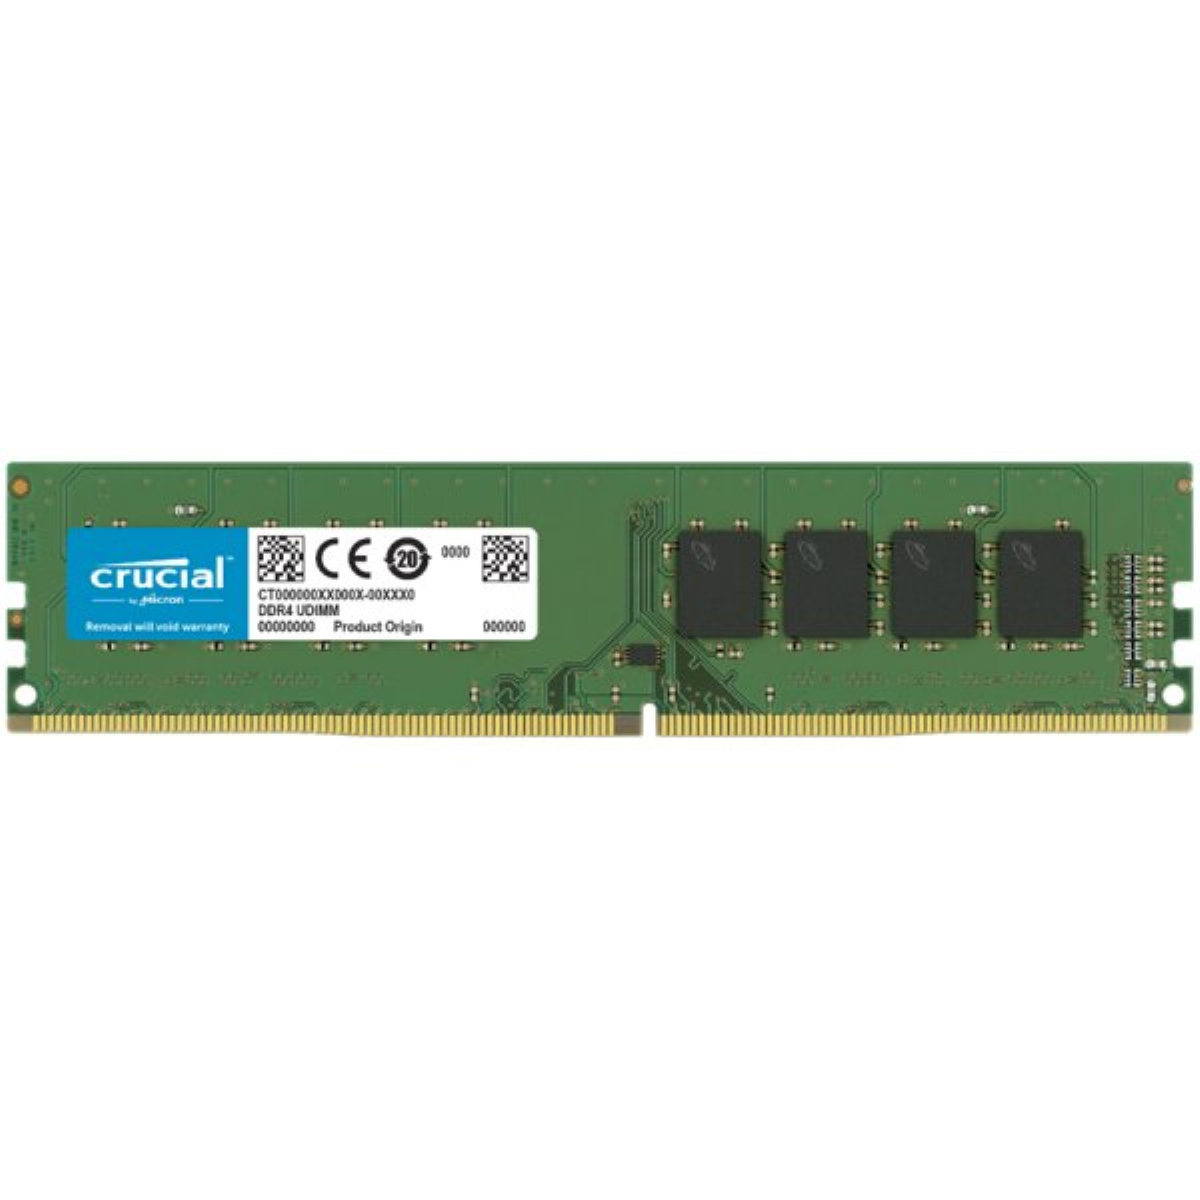 Памет Crucial 16GB DDR4 3200MHz CL22 CT16G4DFRA32A